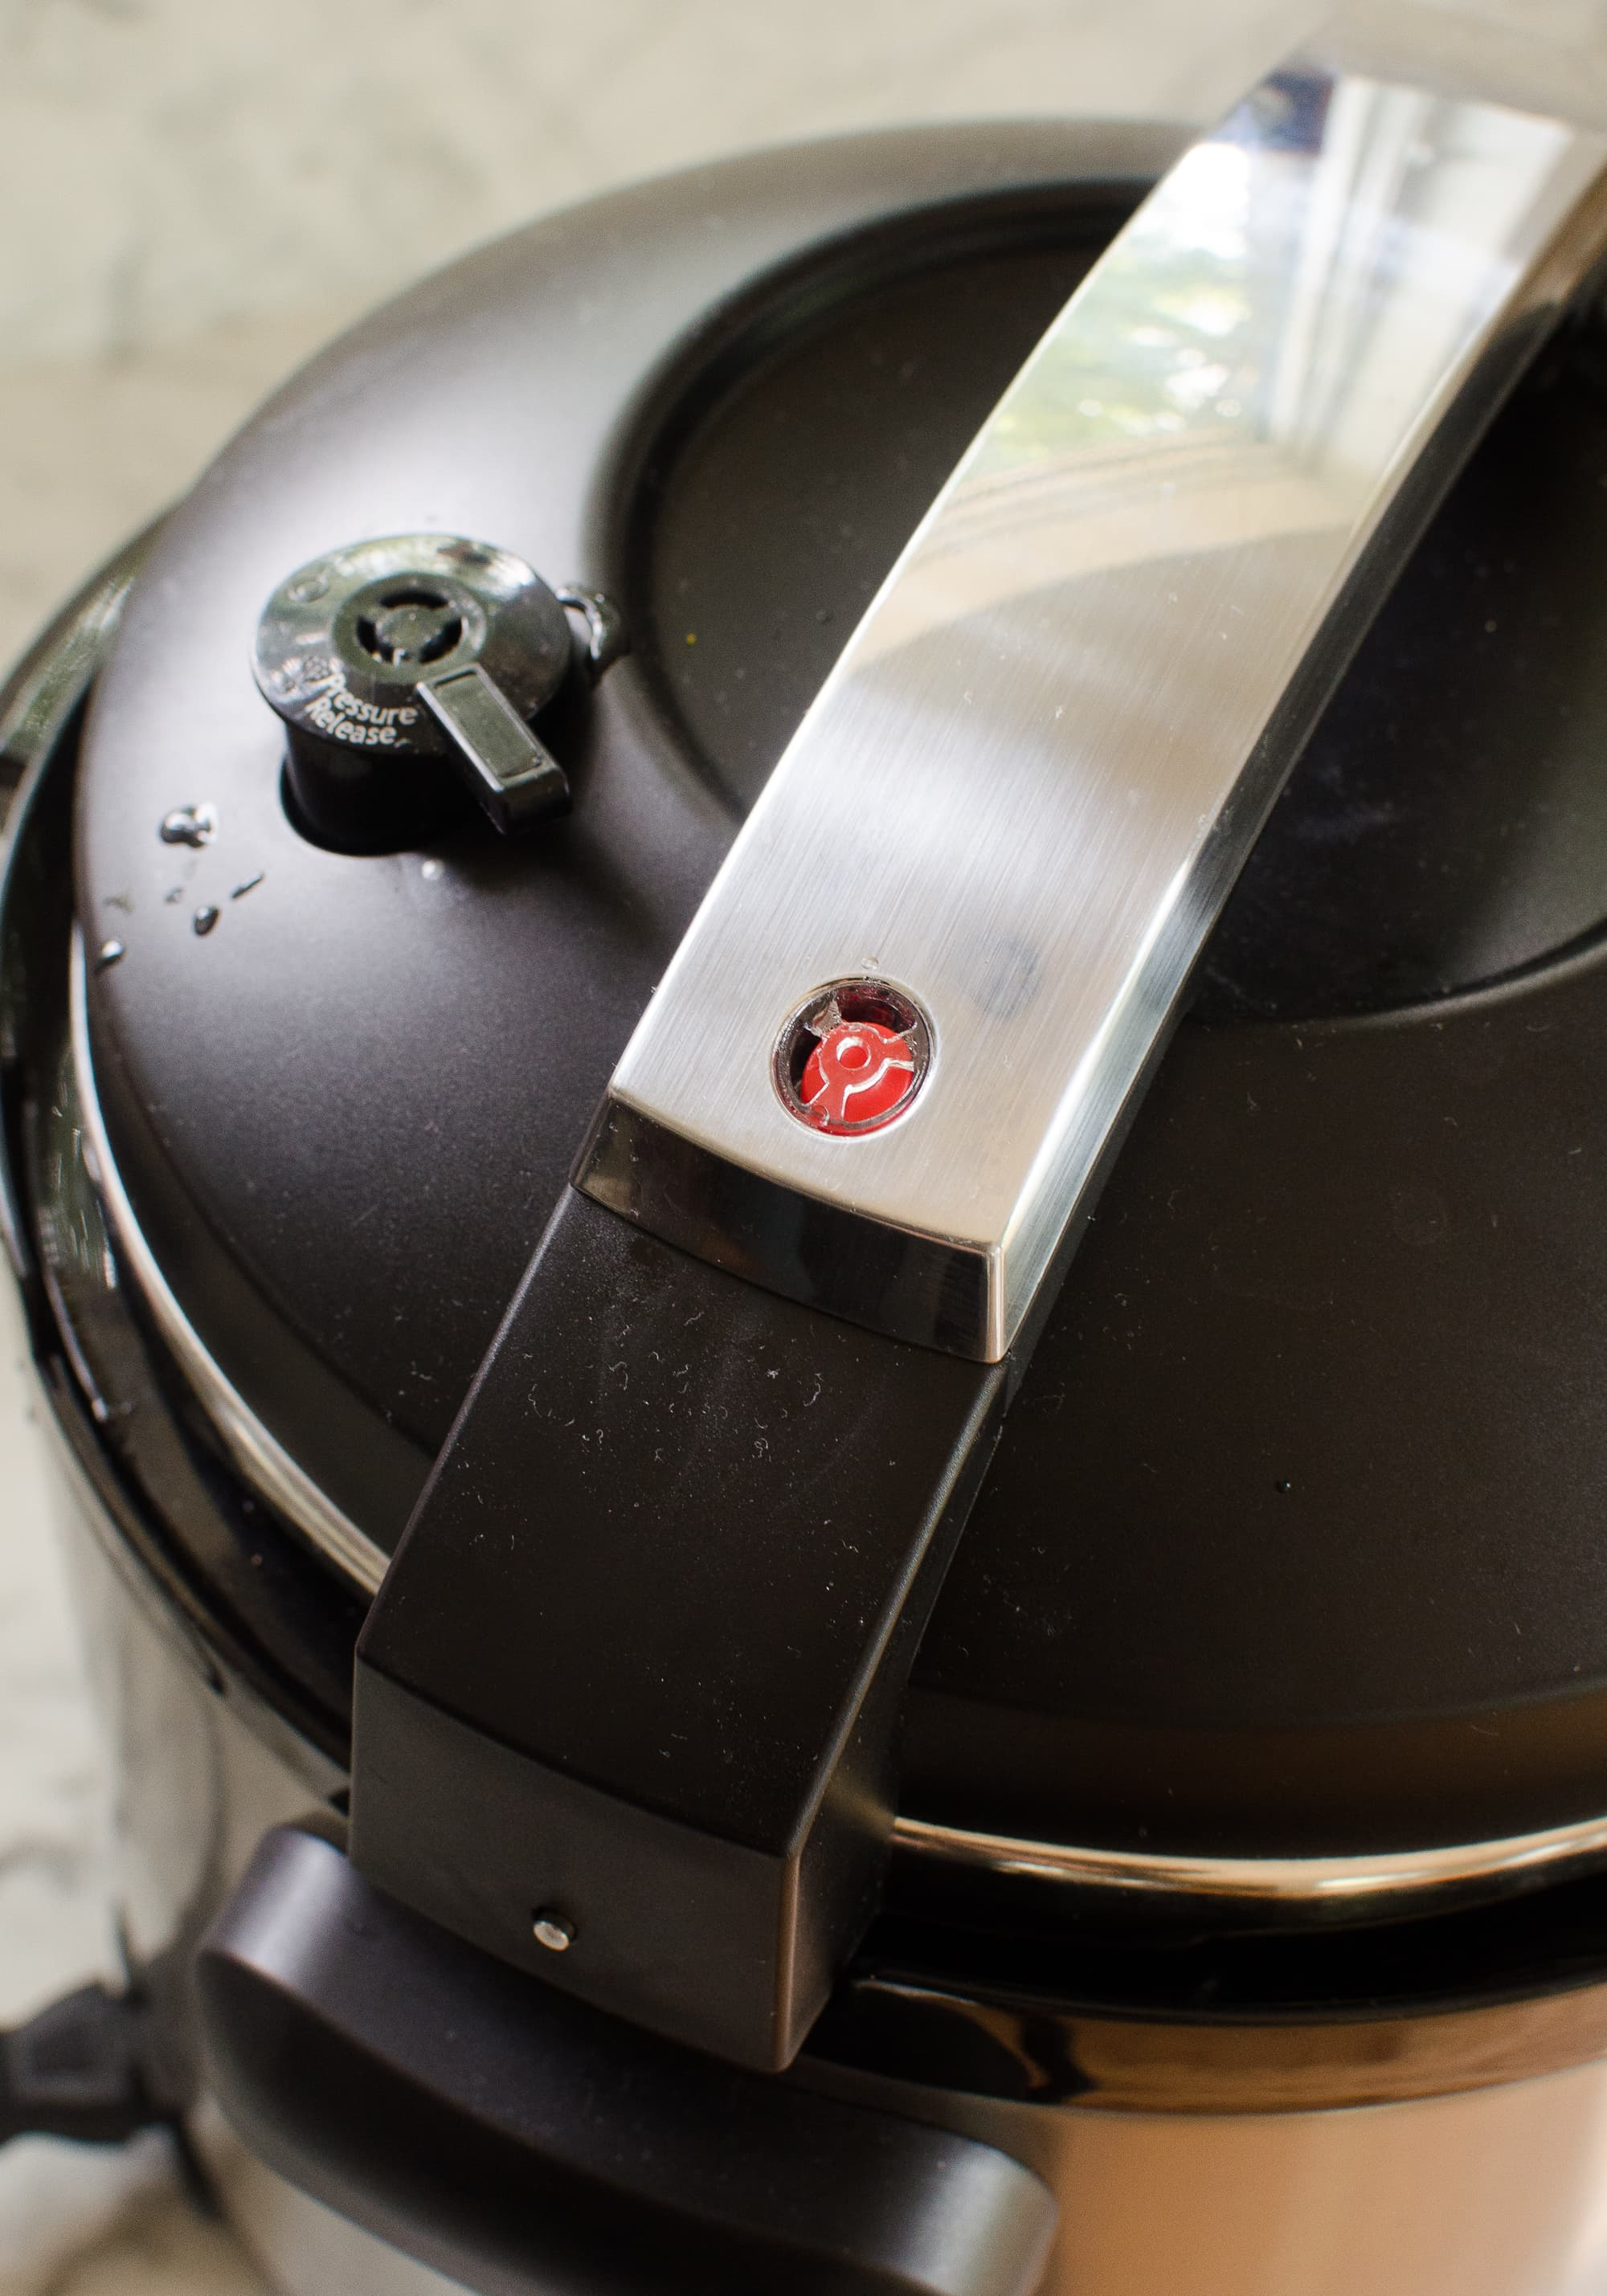 Cuisinart Electric Pressure Cooker: gallery image 5